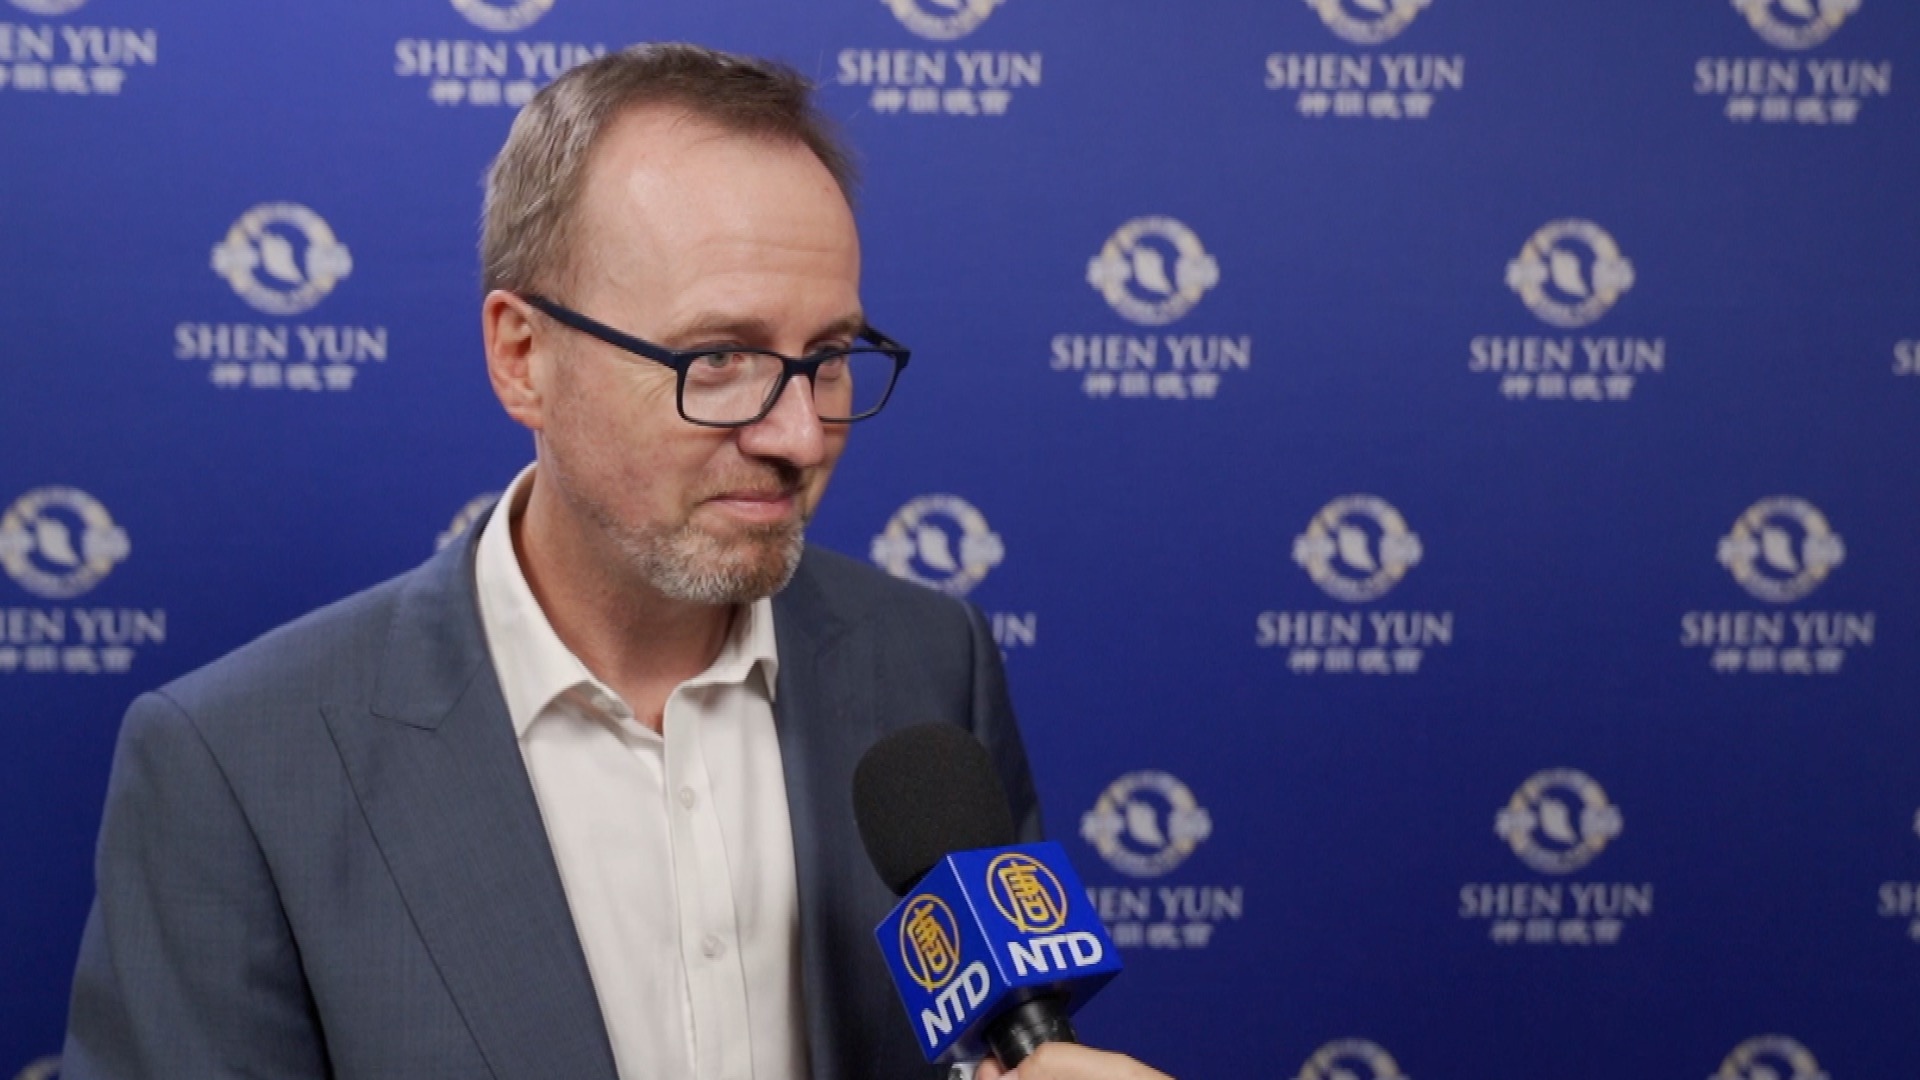 Australian State MP: Shen Yun a 'Magical Display of Art'